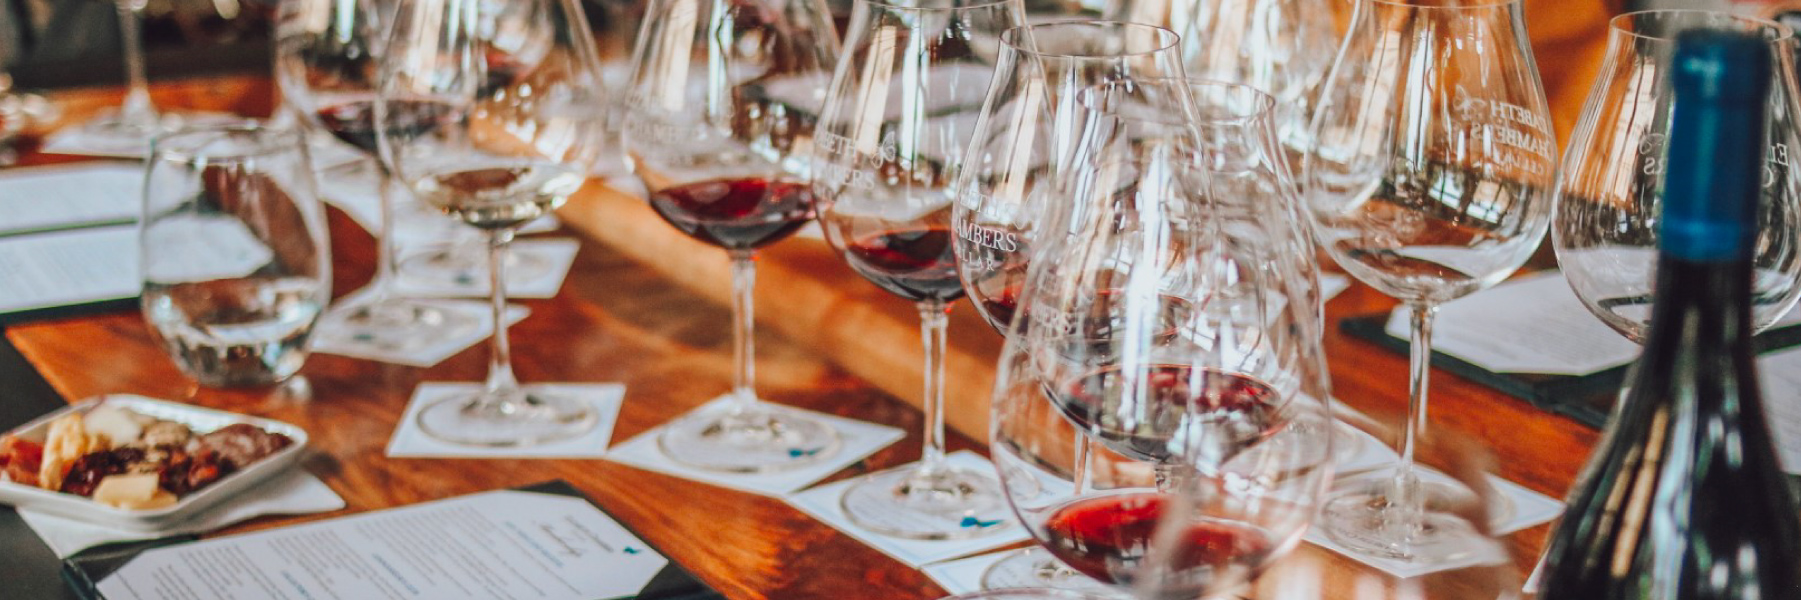 Luxe Tastings at Elizabeth Chambers Cellar in McMinnville, Oregon